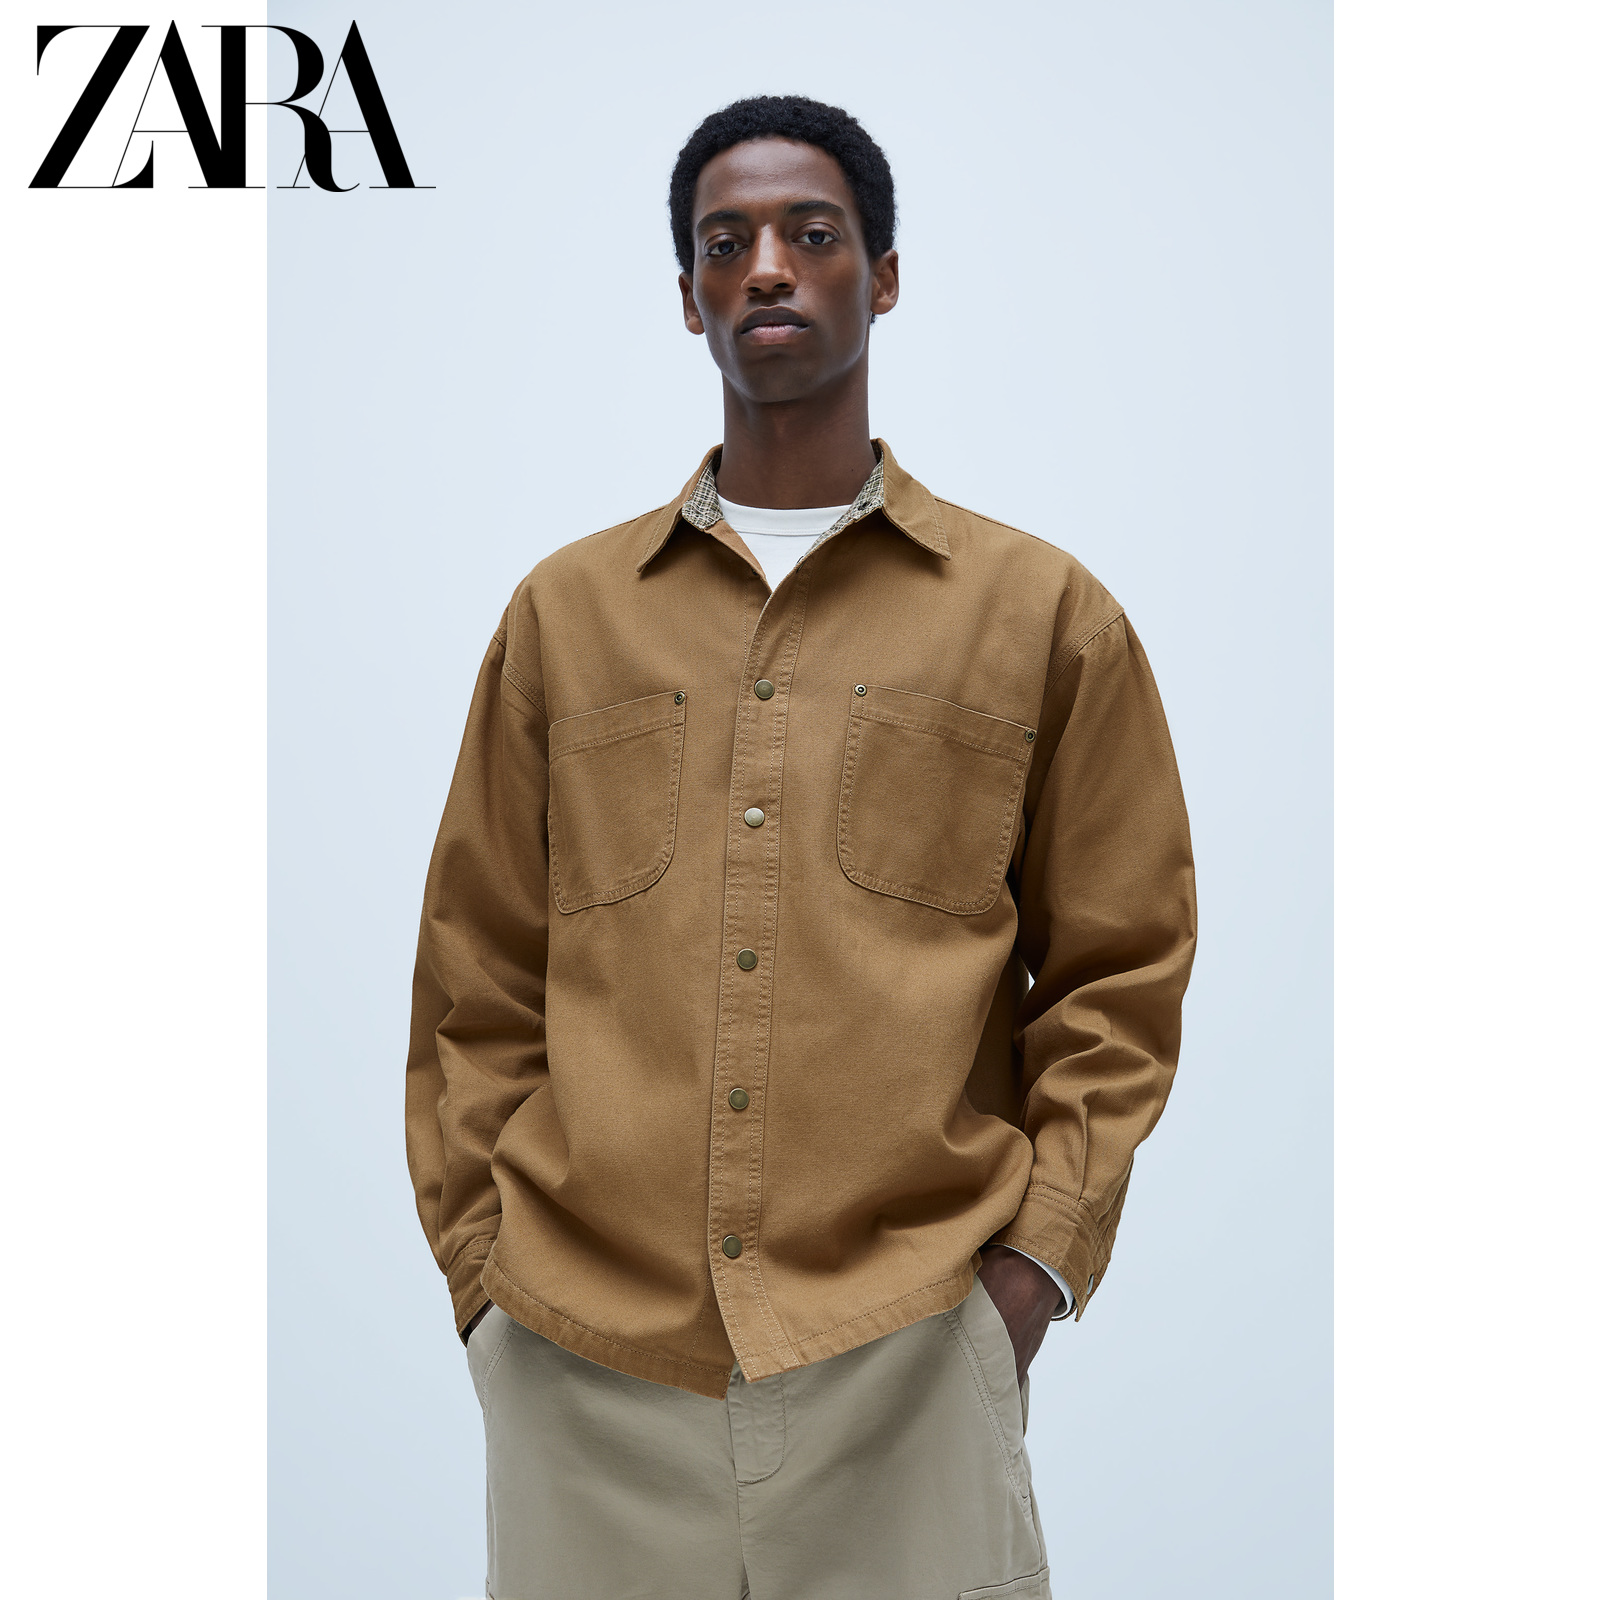 Zara new men's casual splicing texture shirt coat 01538400707